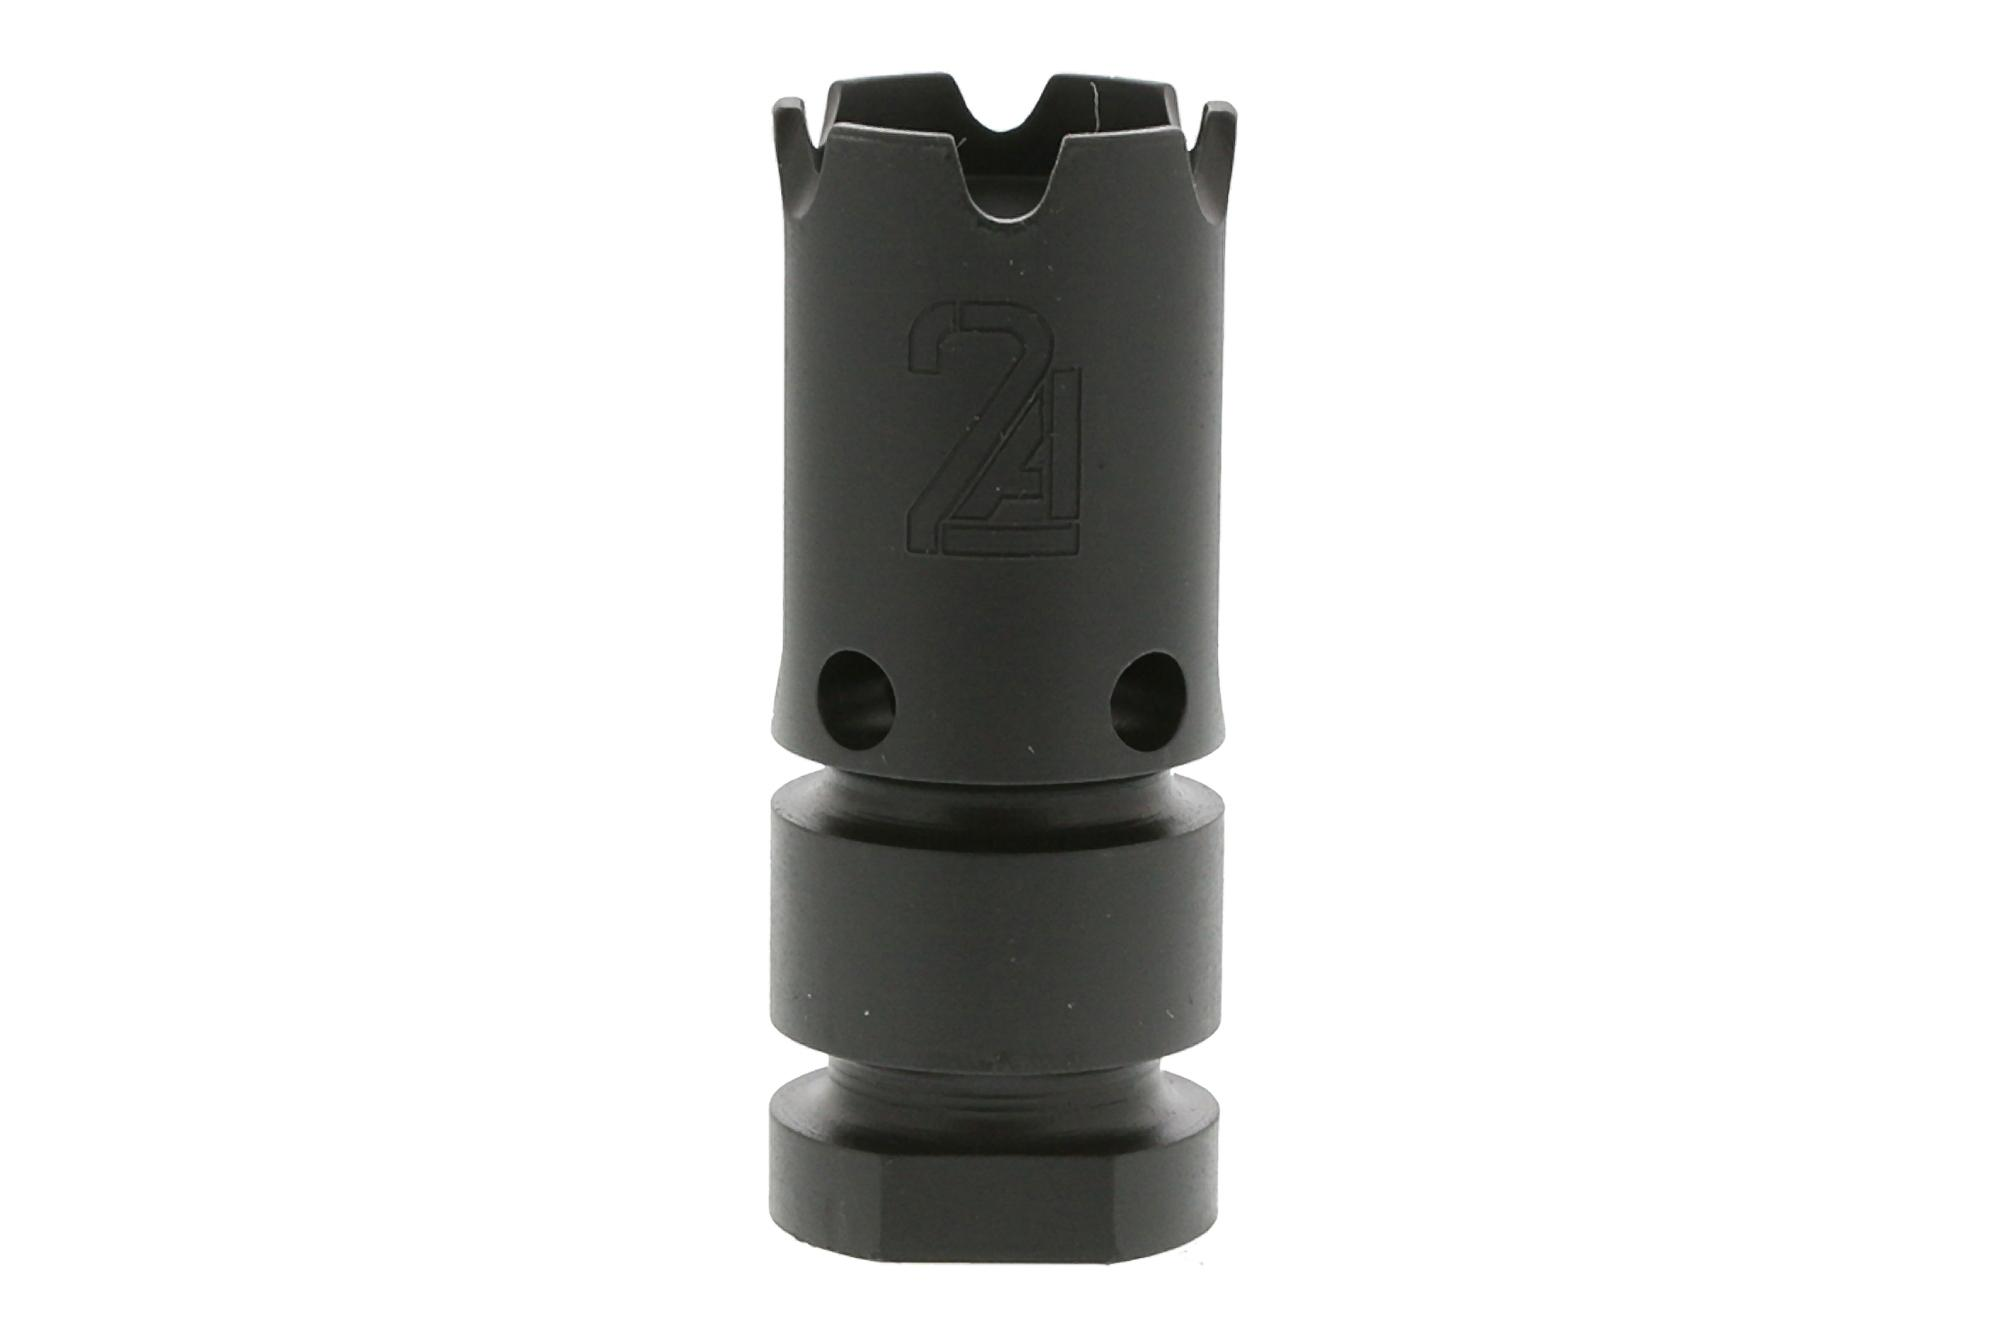 The 2A Armament T3 556 compensator vents gas upward to reduce muzzle rise